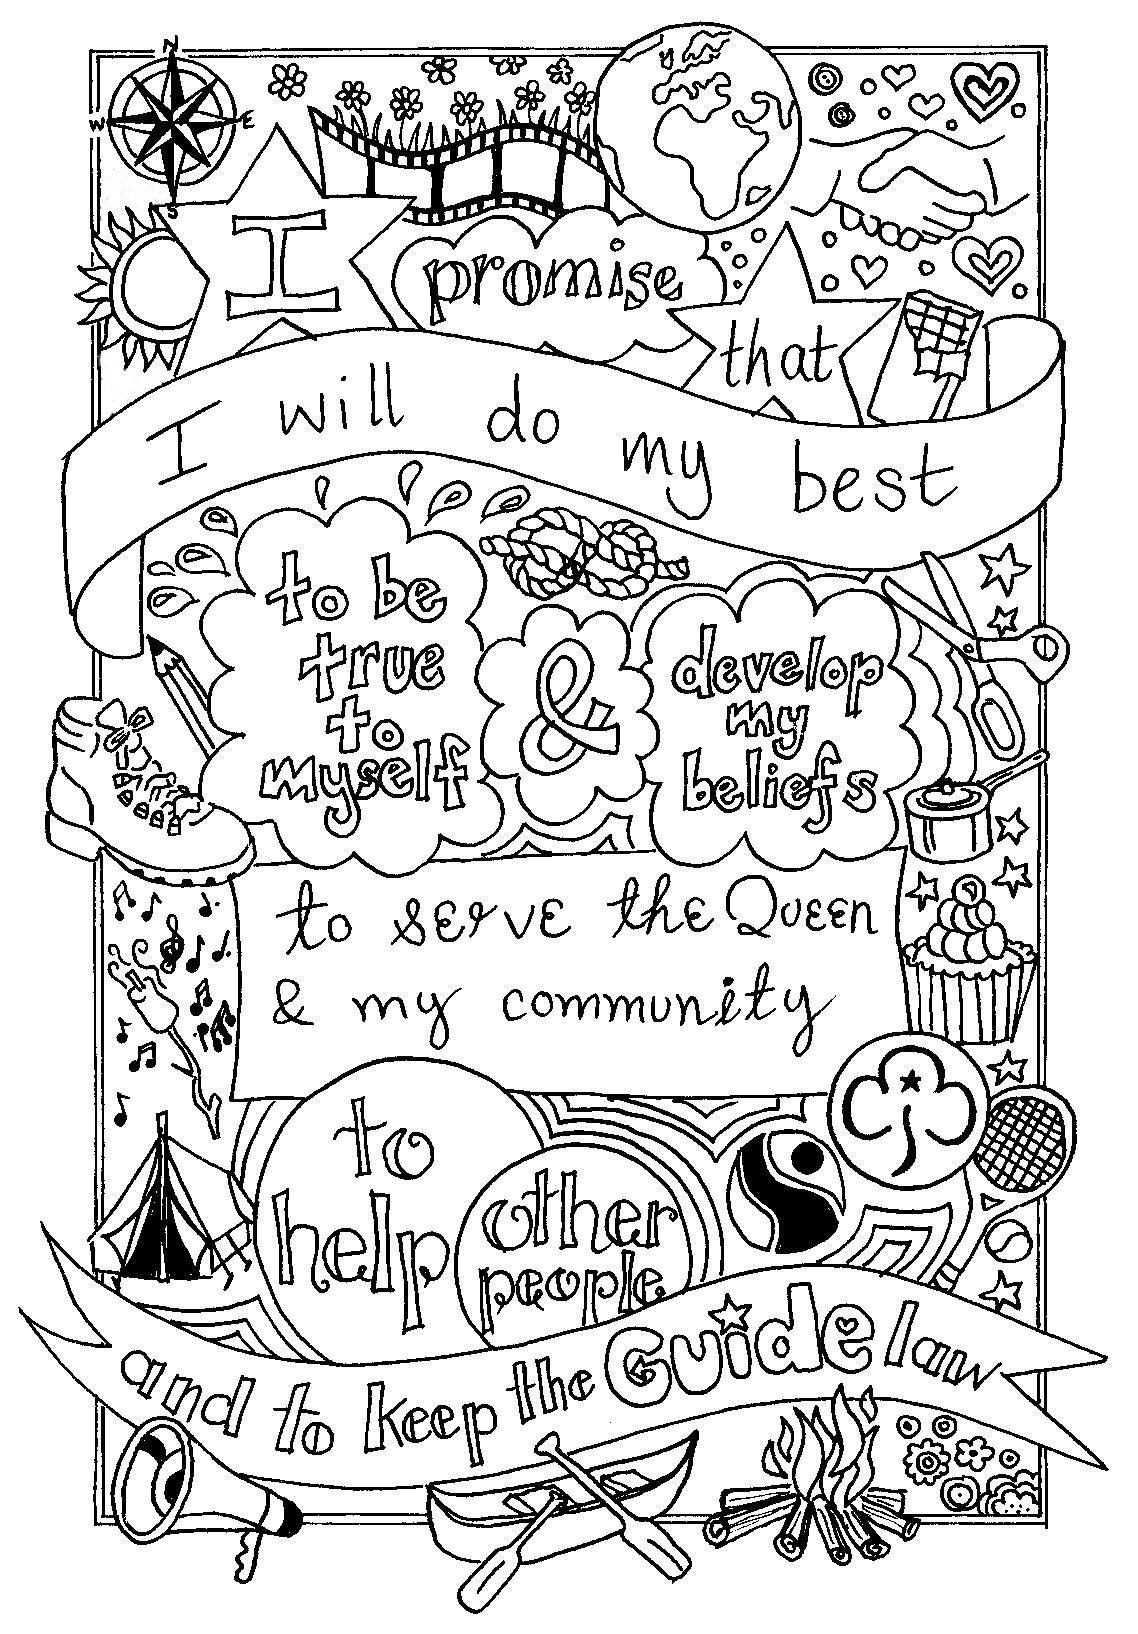 girl scout promise coloring page the girl scout promise coloring page twisty noodle promise page girl coloring scout